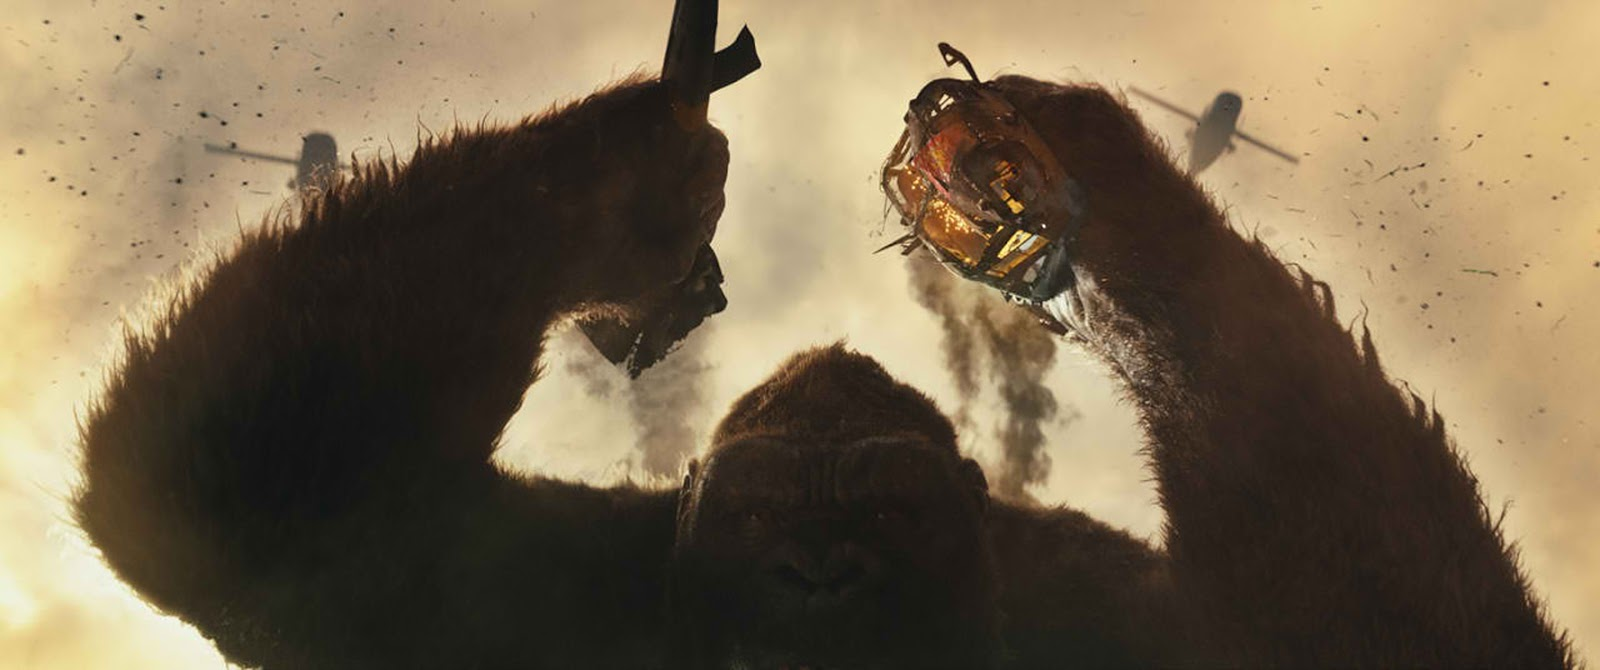 Kong: Skull Island - Art Destruction